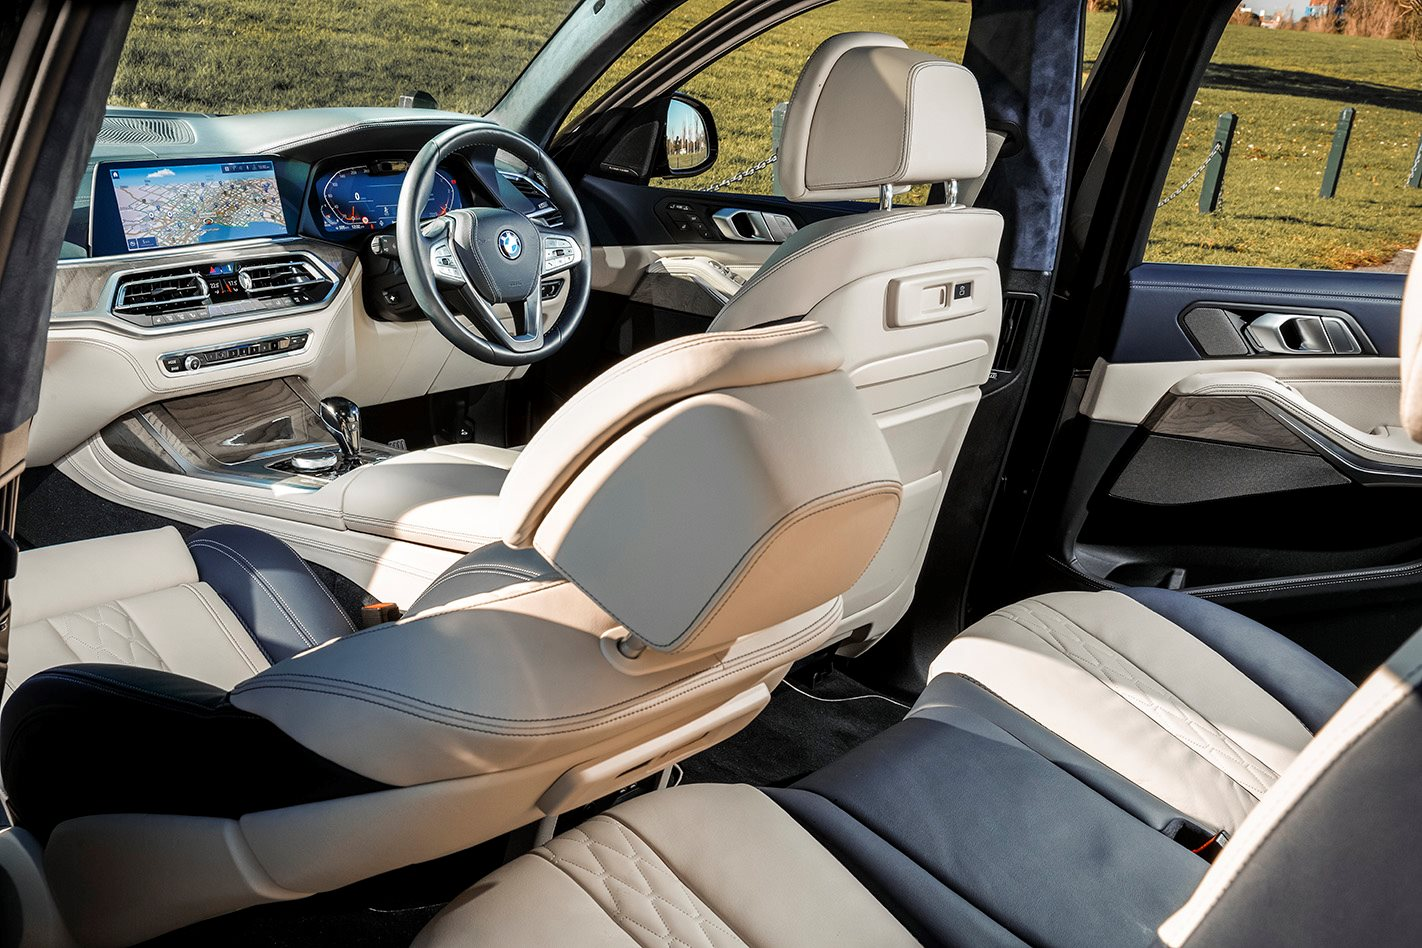 2019 Bmw X7 Xdrive30d Review Sprawling And Splendid